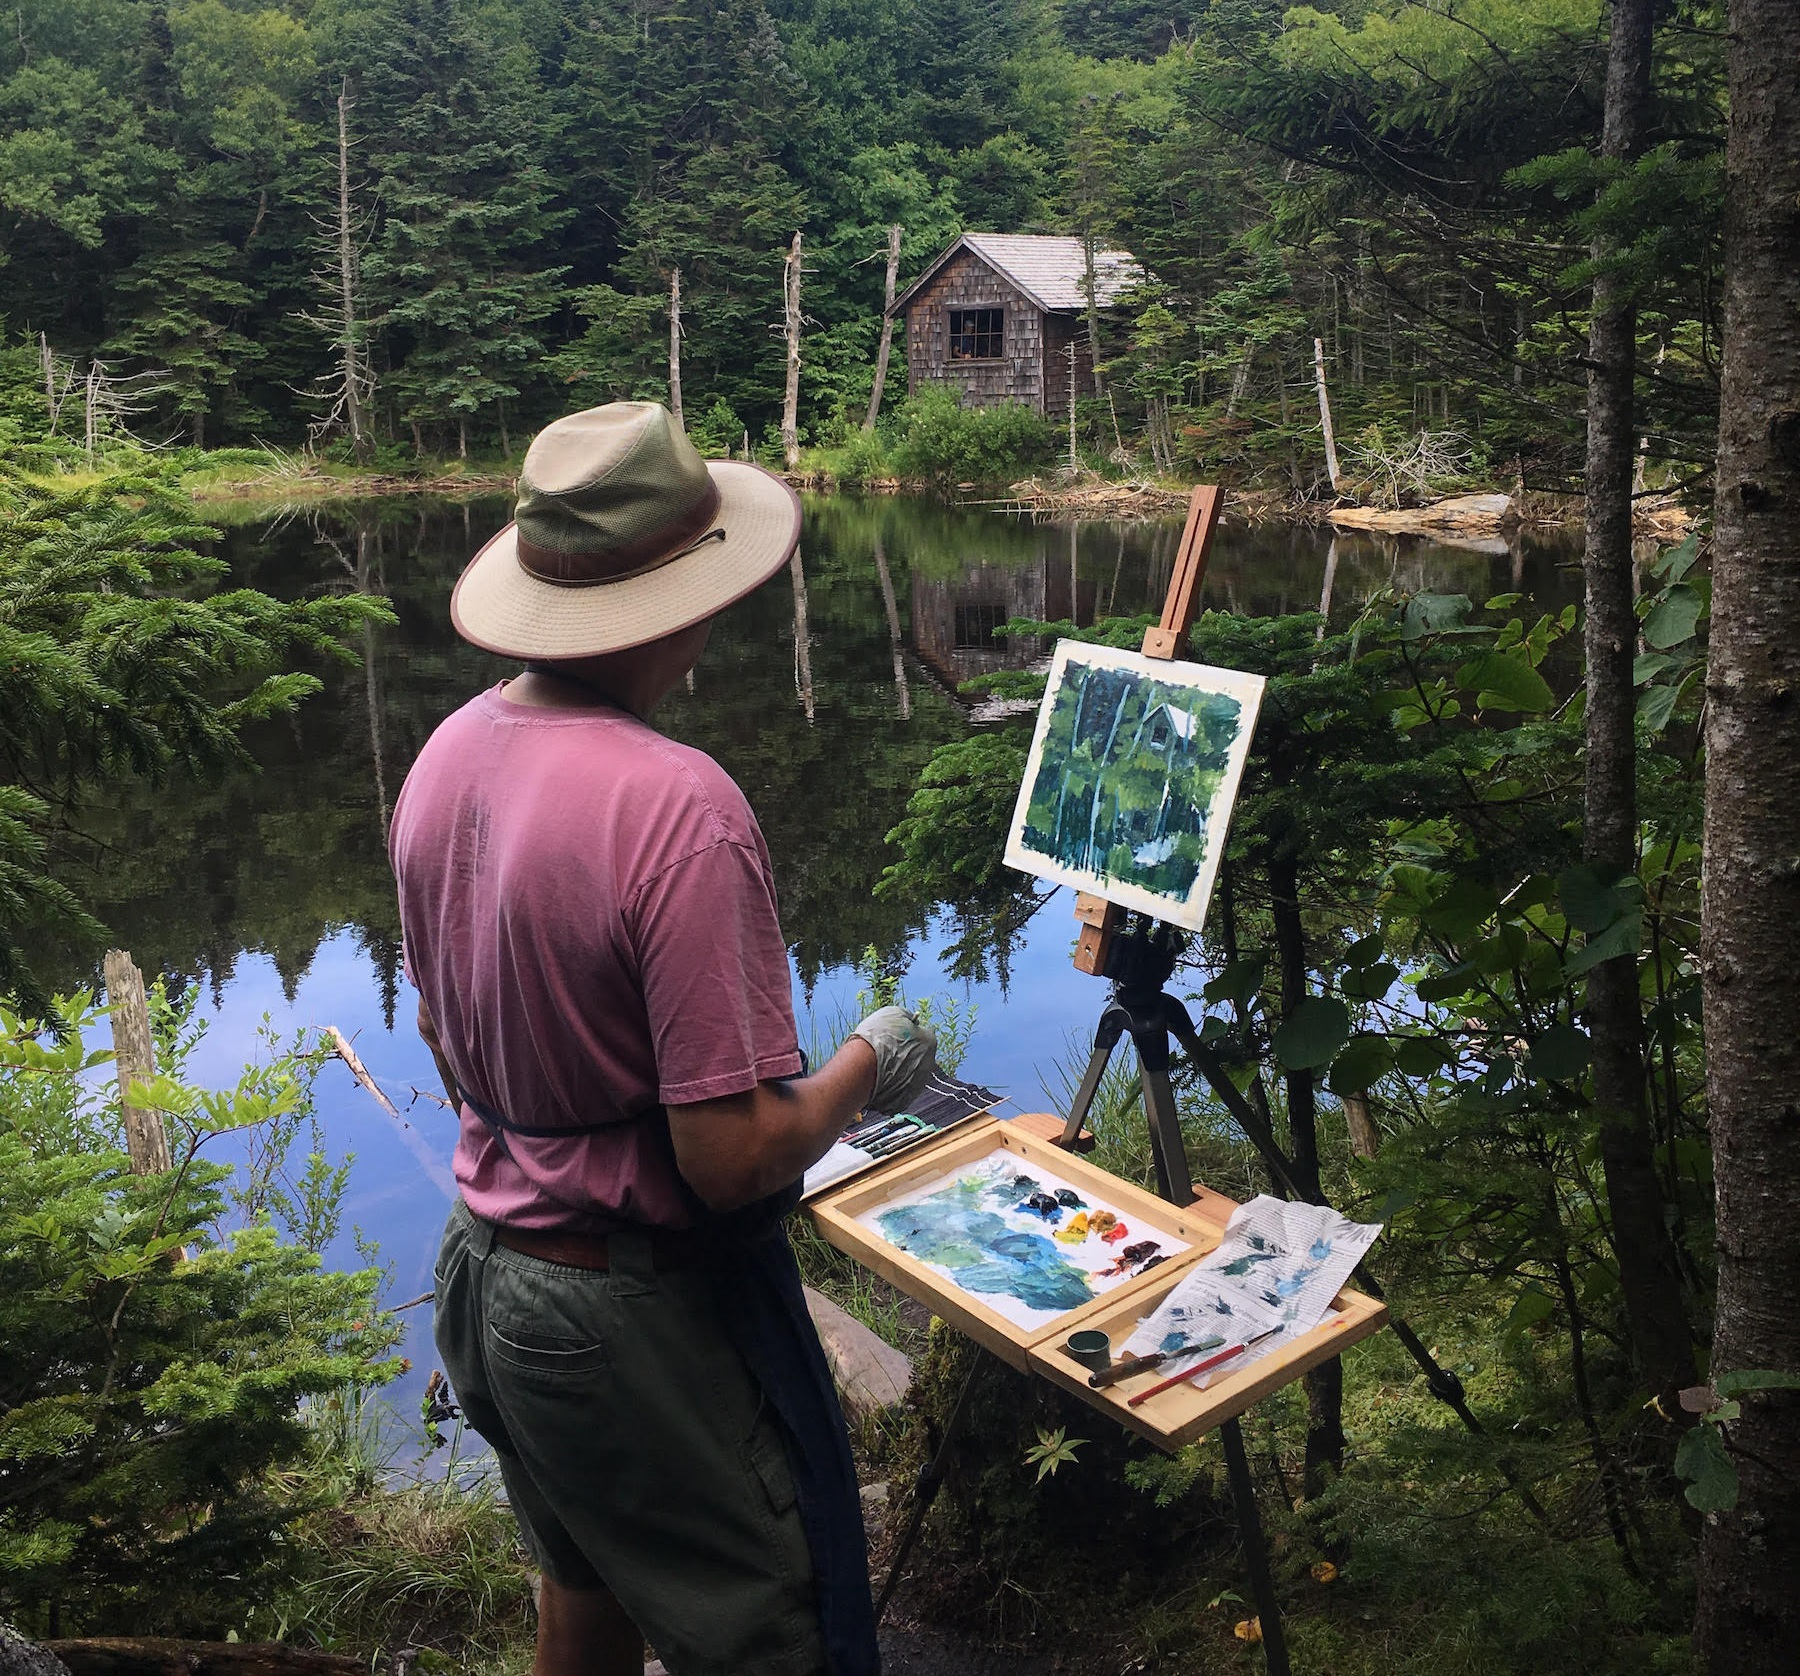 Bob Lafond paints natural landscapes of the Berkshires, as well as scenes from Brooklyn streets, with a clear sense of season and light.